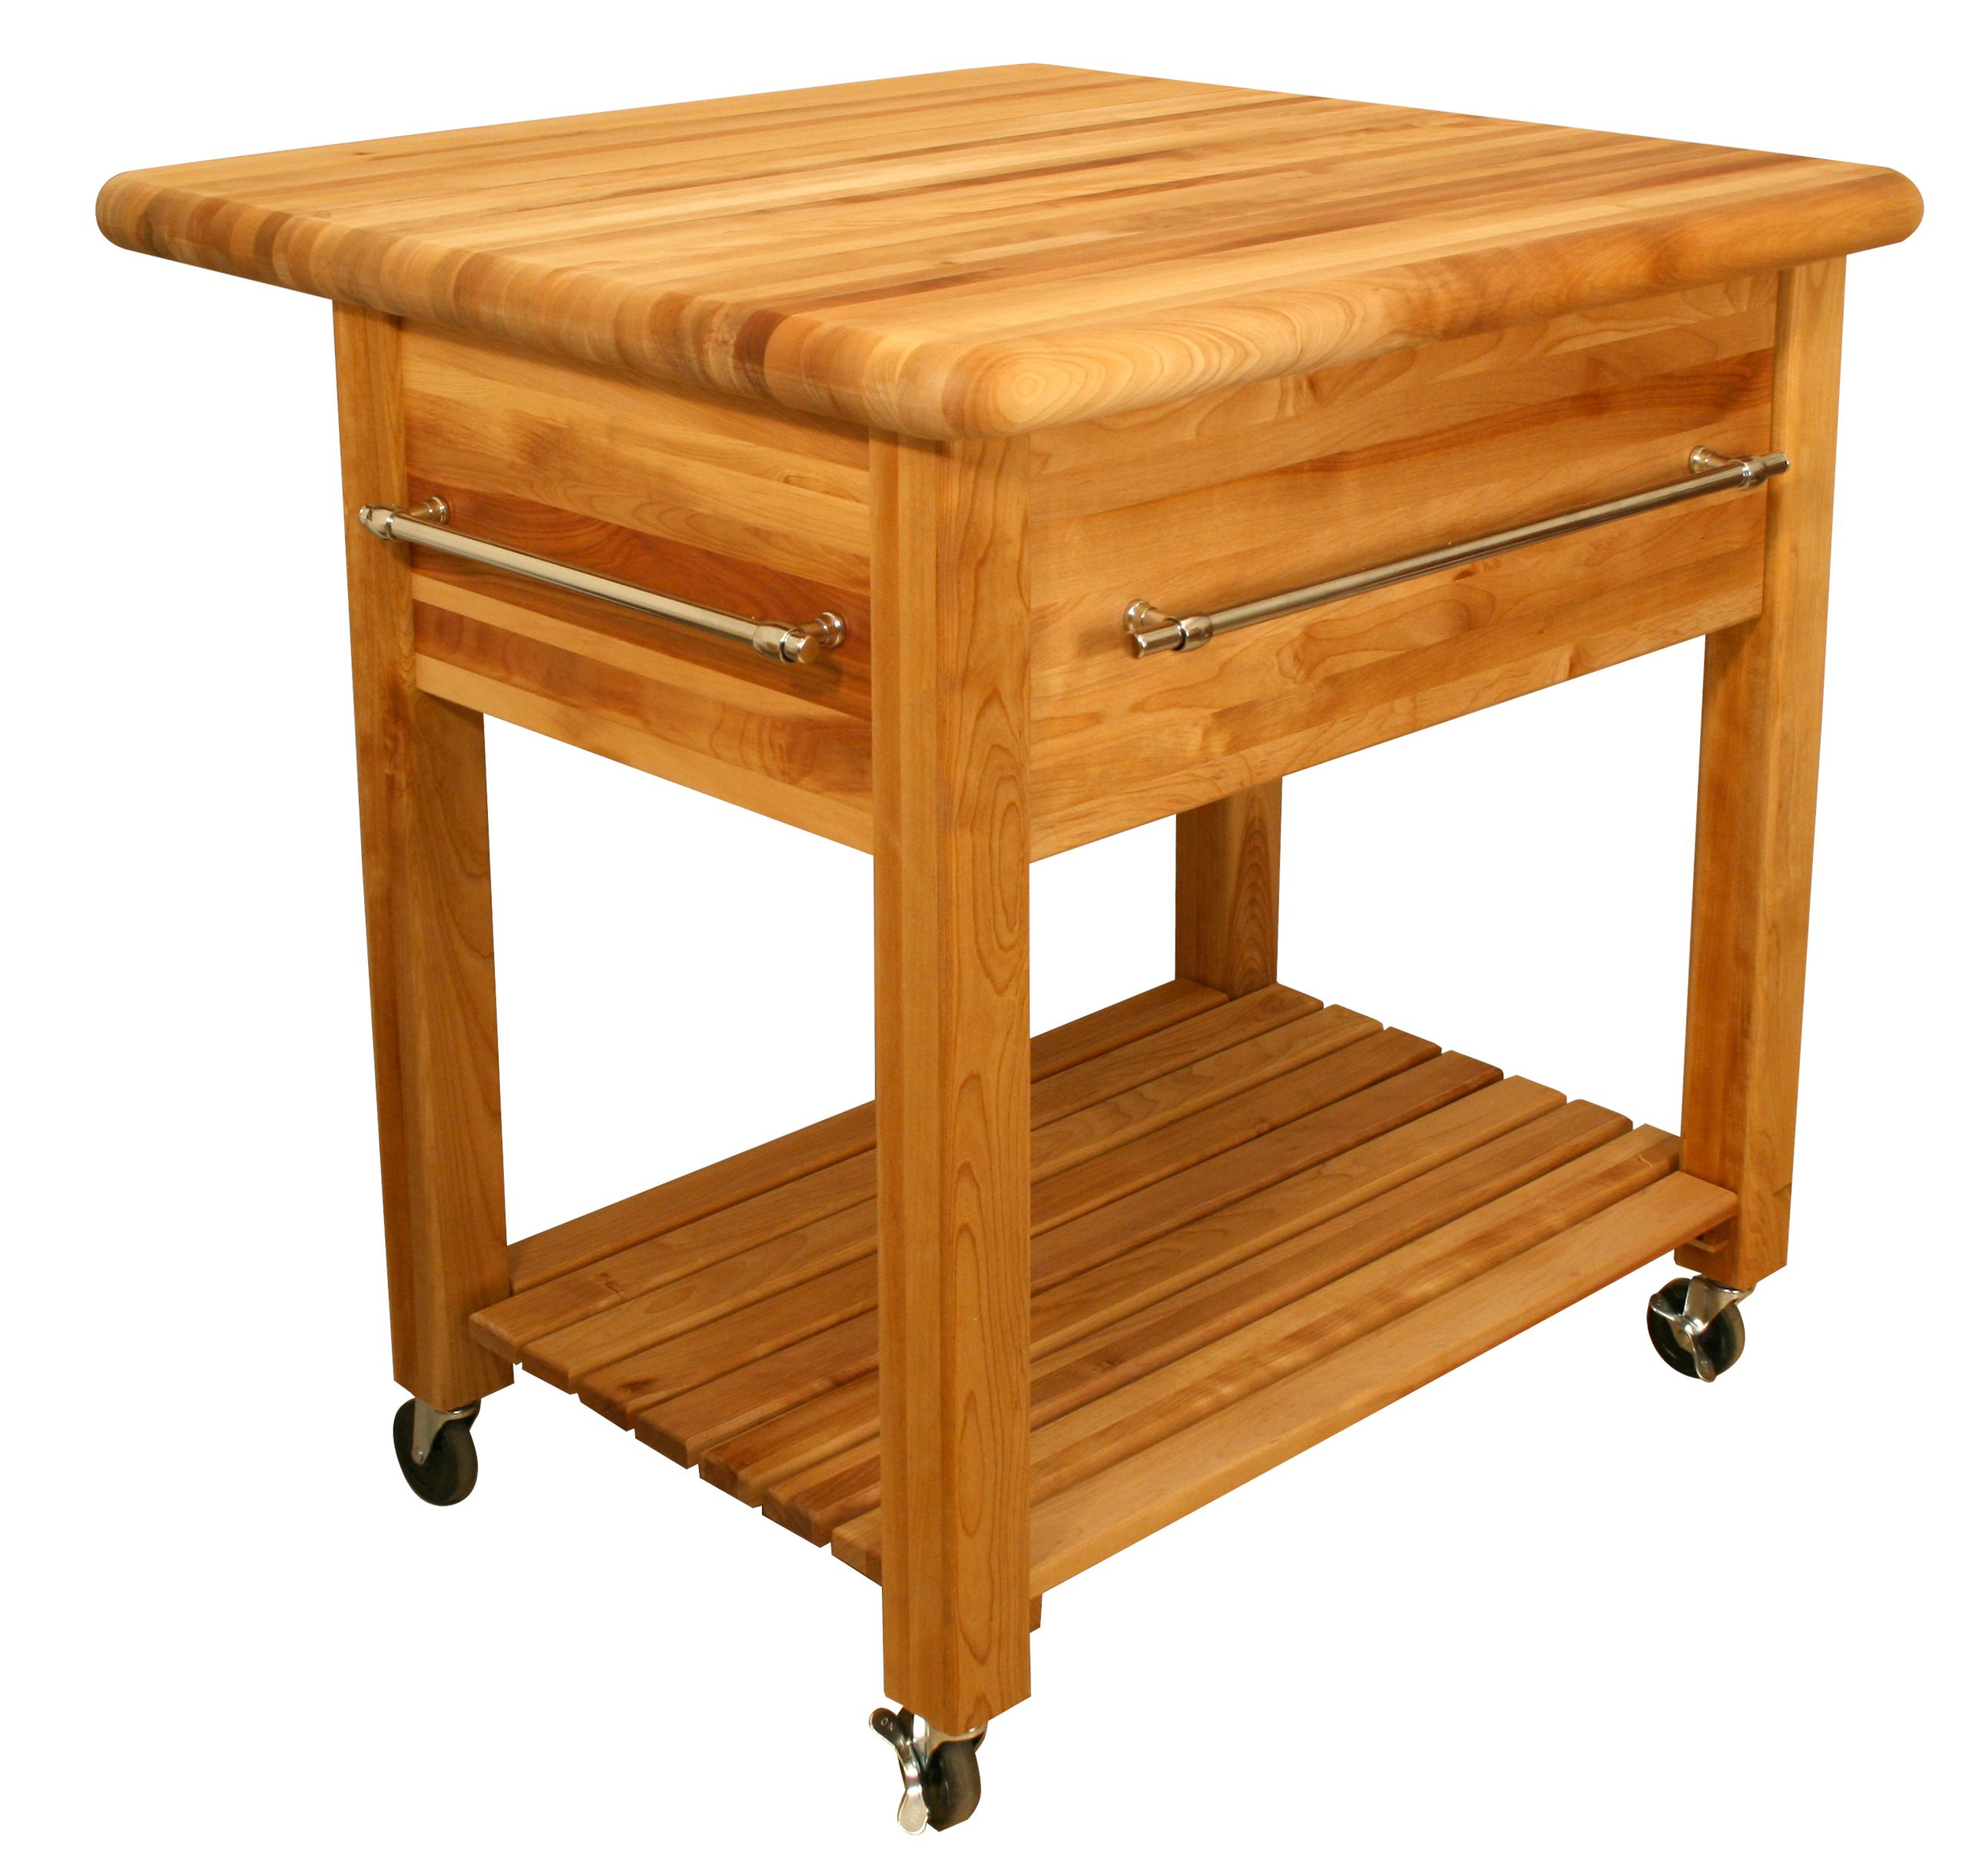 Catskill grand work center 2 butcher block 36 x34 w - Small butcher block island ...